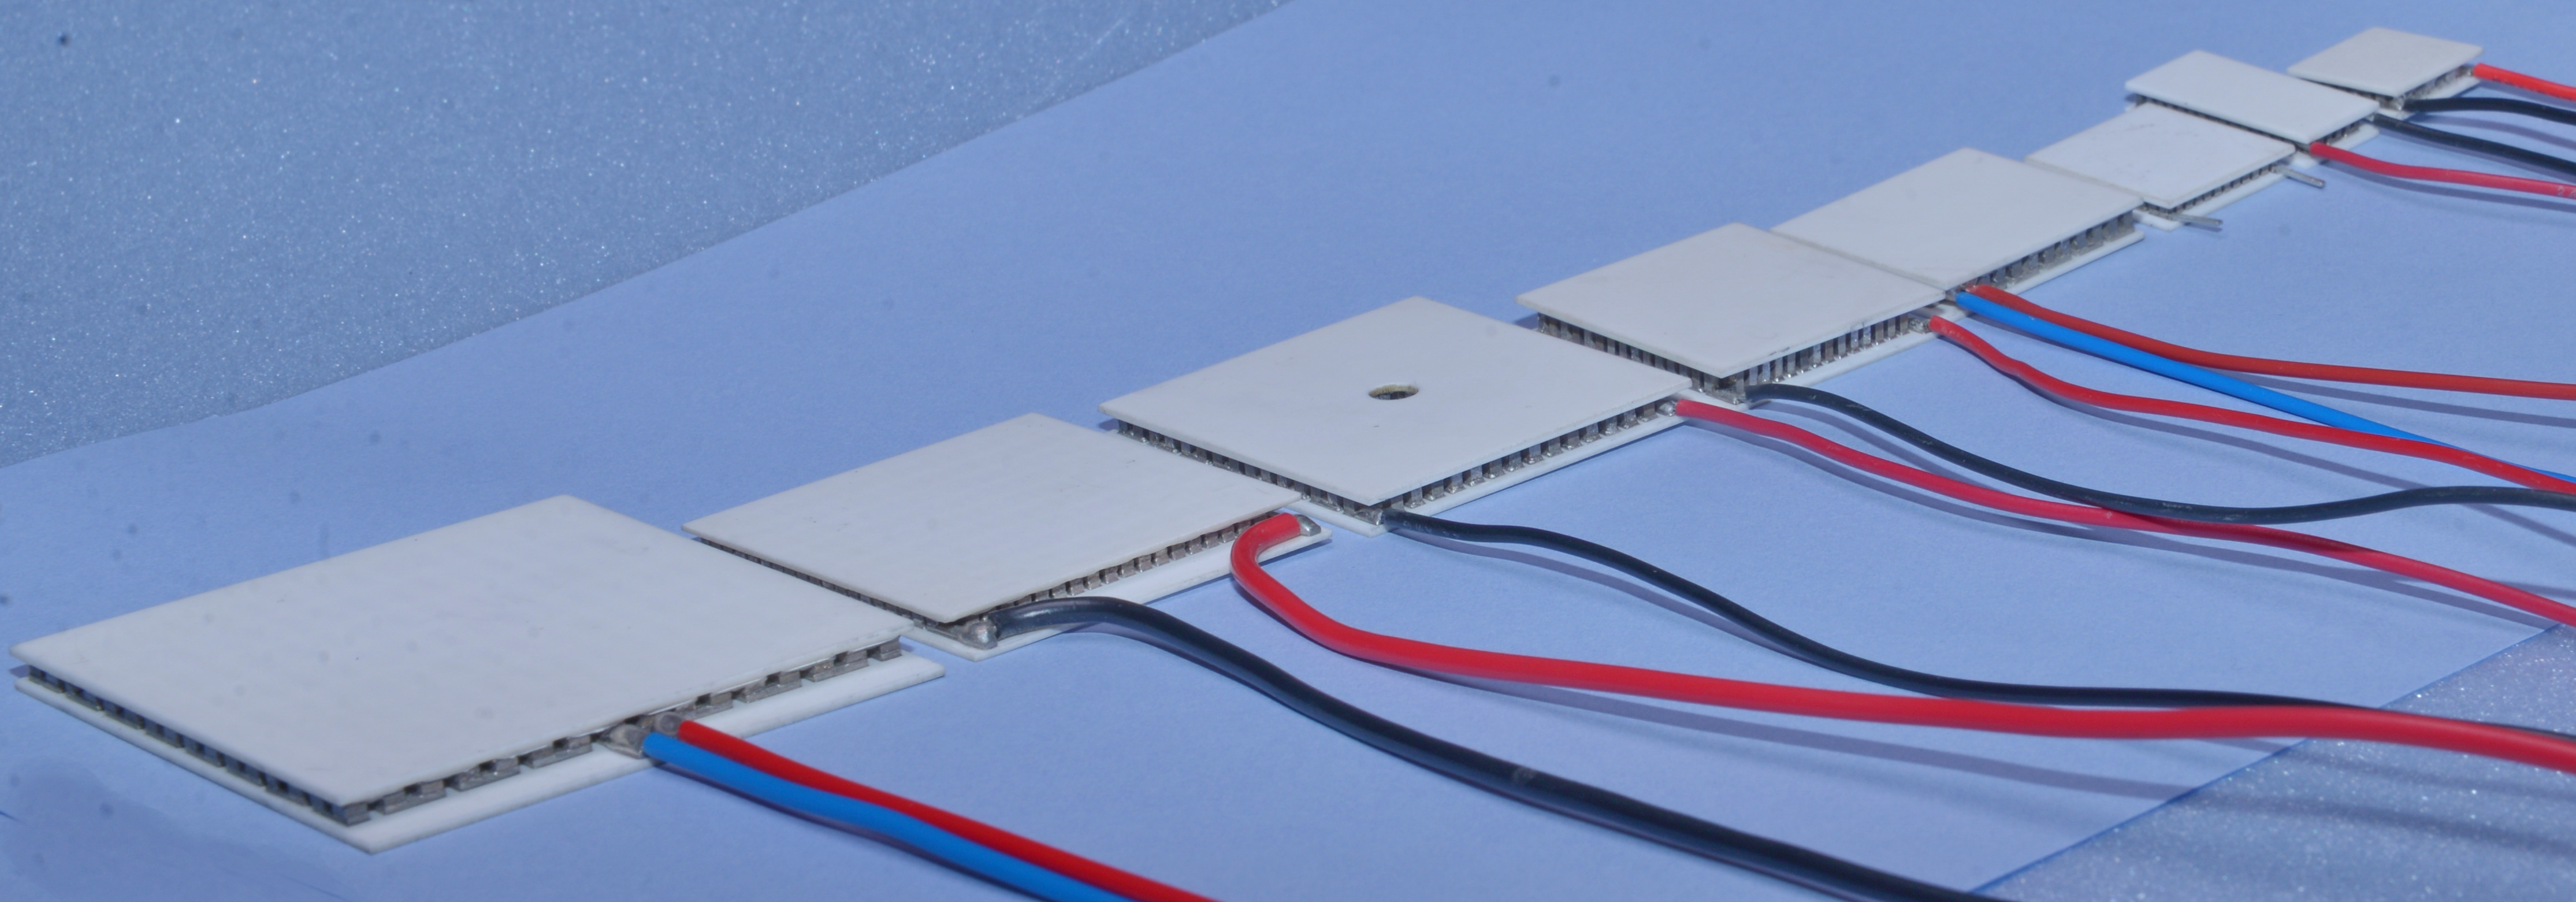 Thermoelectric Coolers, Thermoelectric Chillers | CustomChill